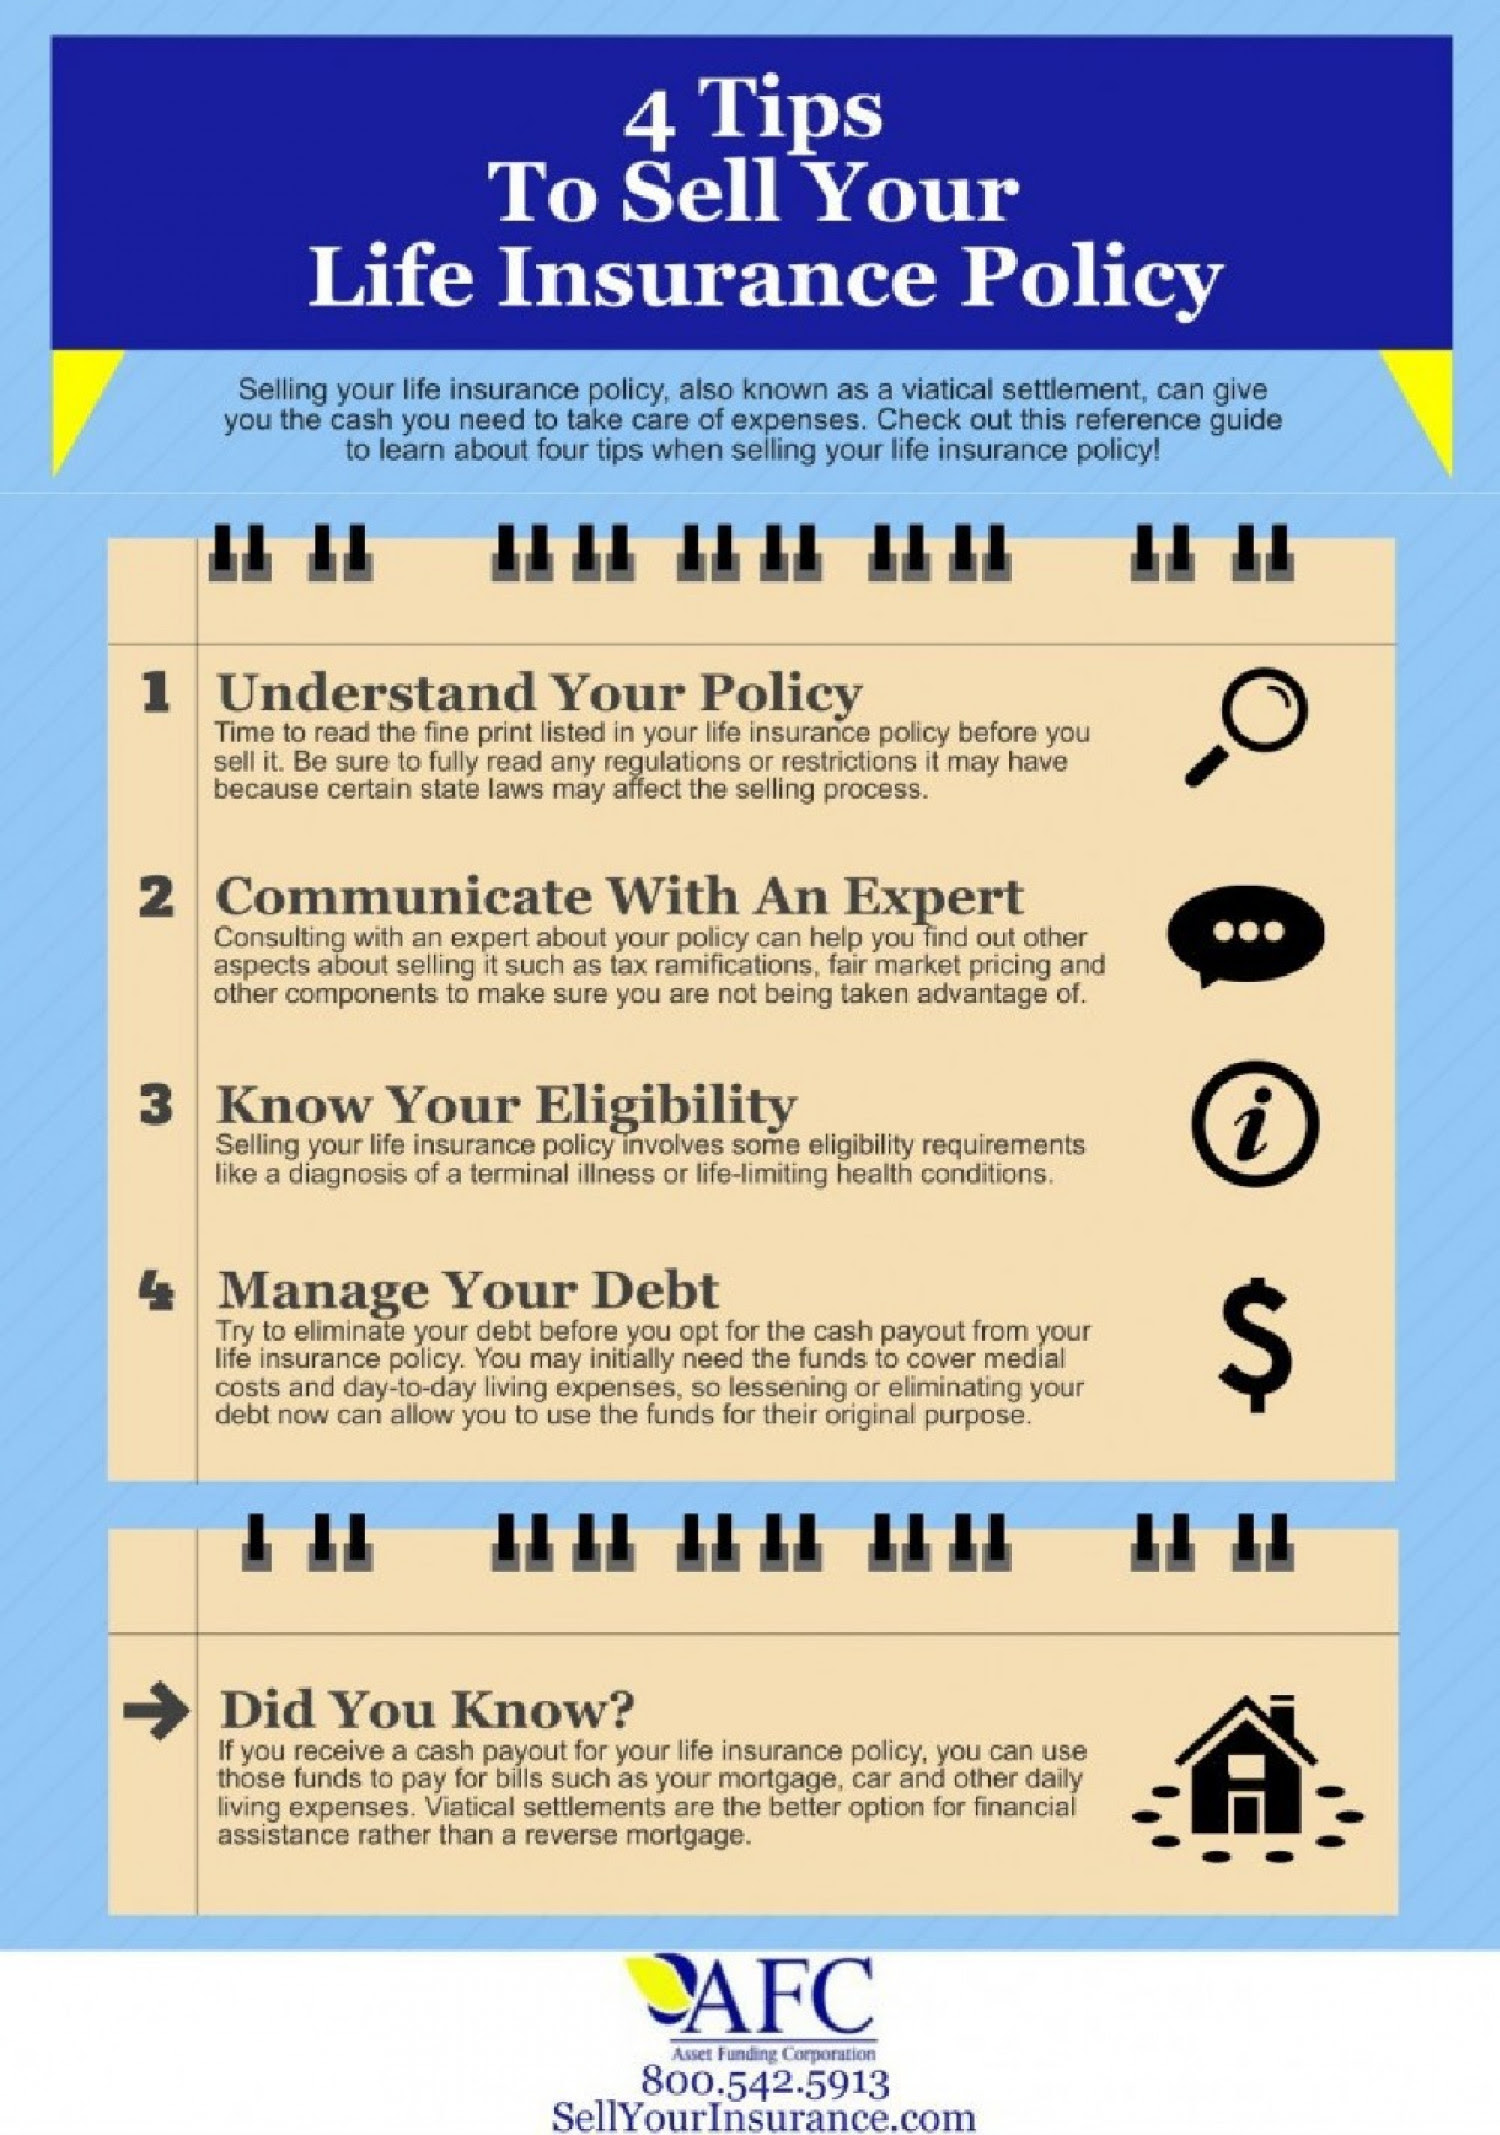 4 Tips to Sell Your Life Insurance Policy | Visual.ly